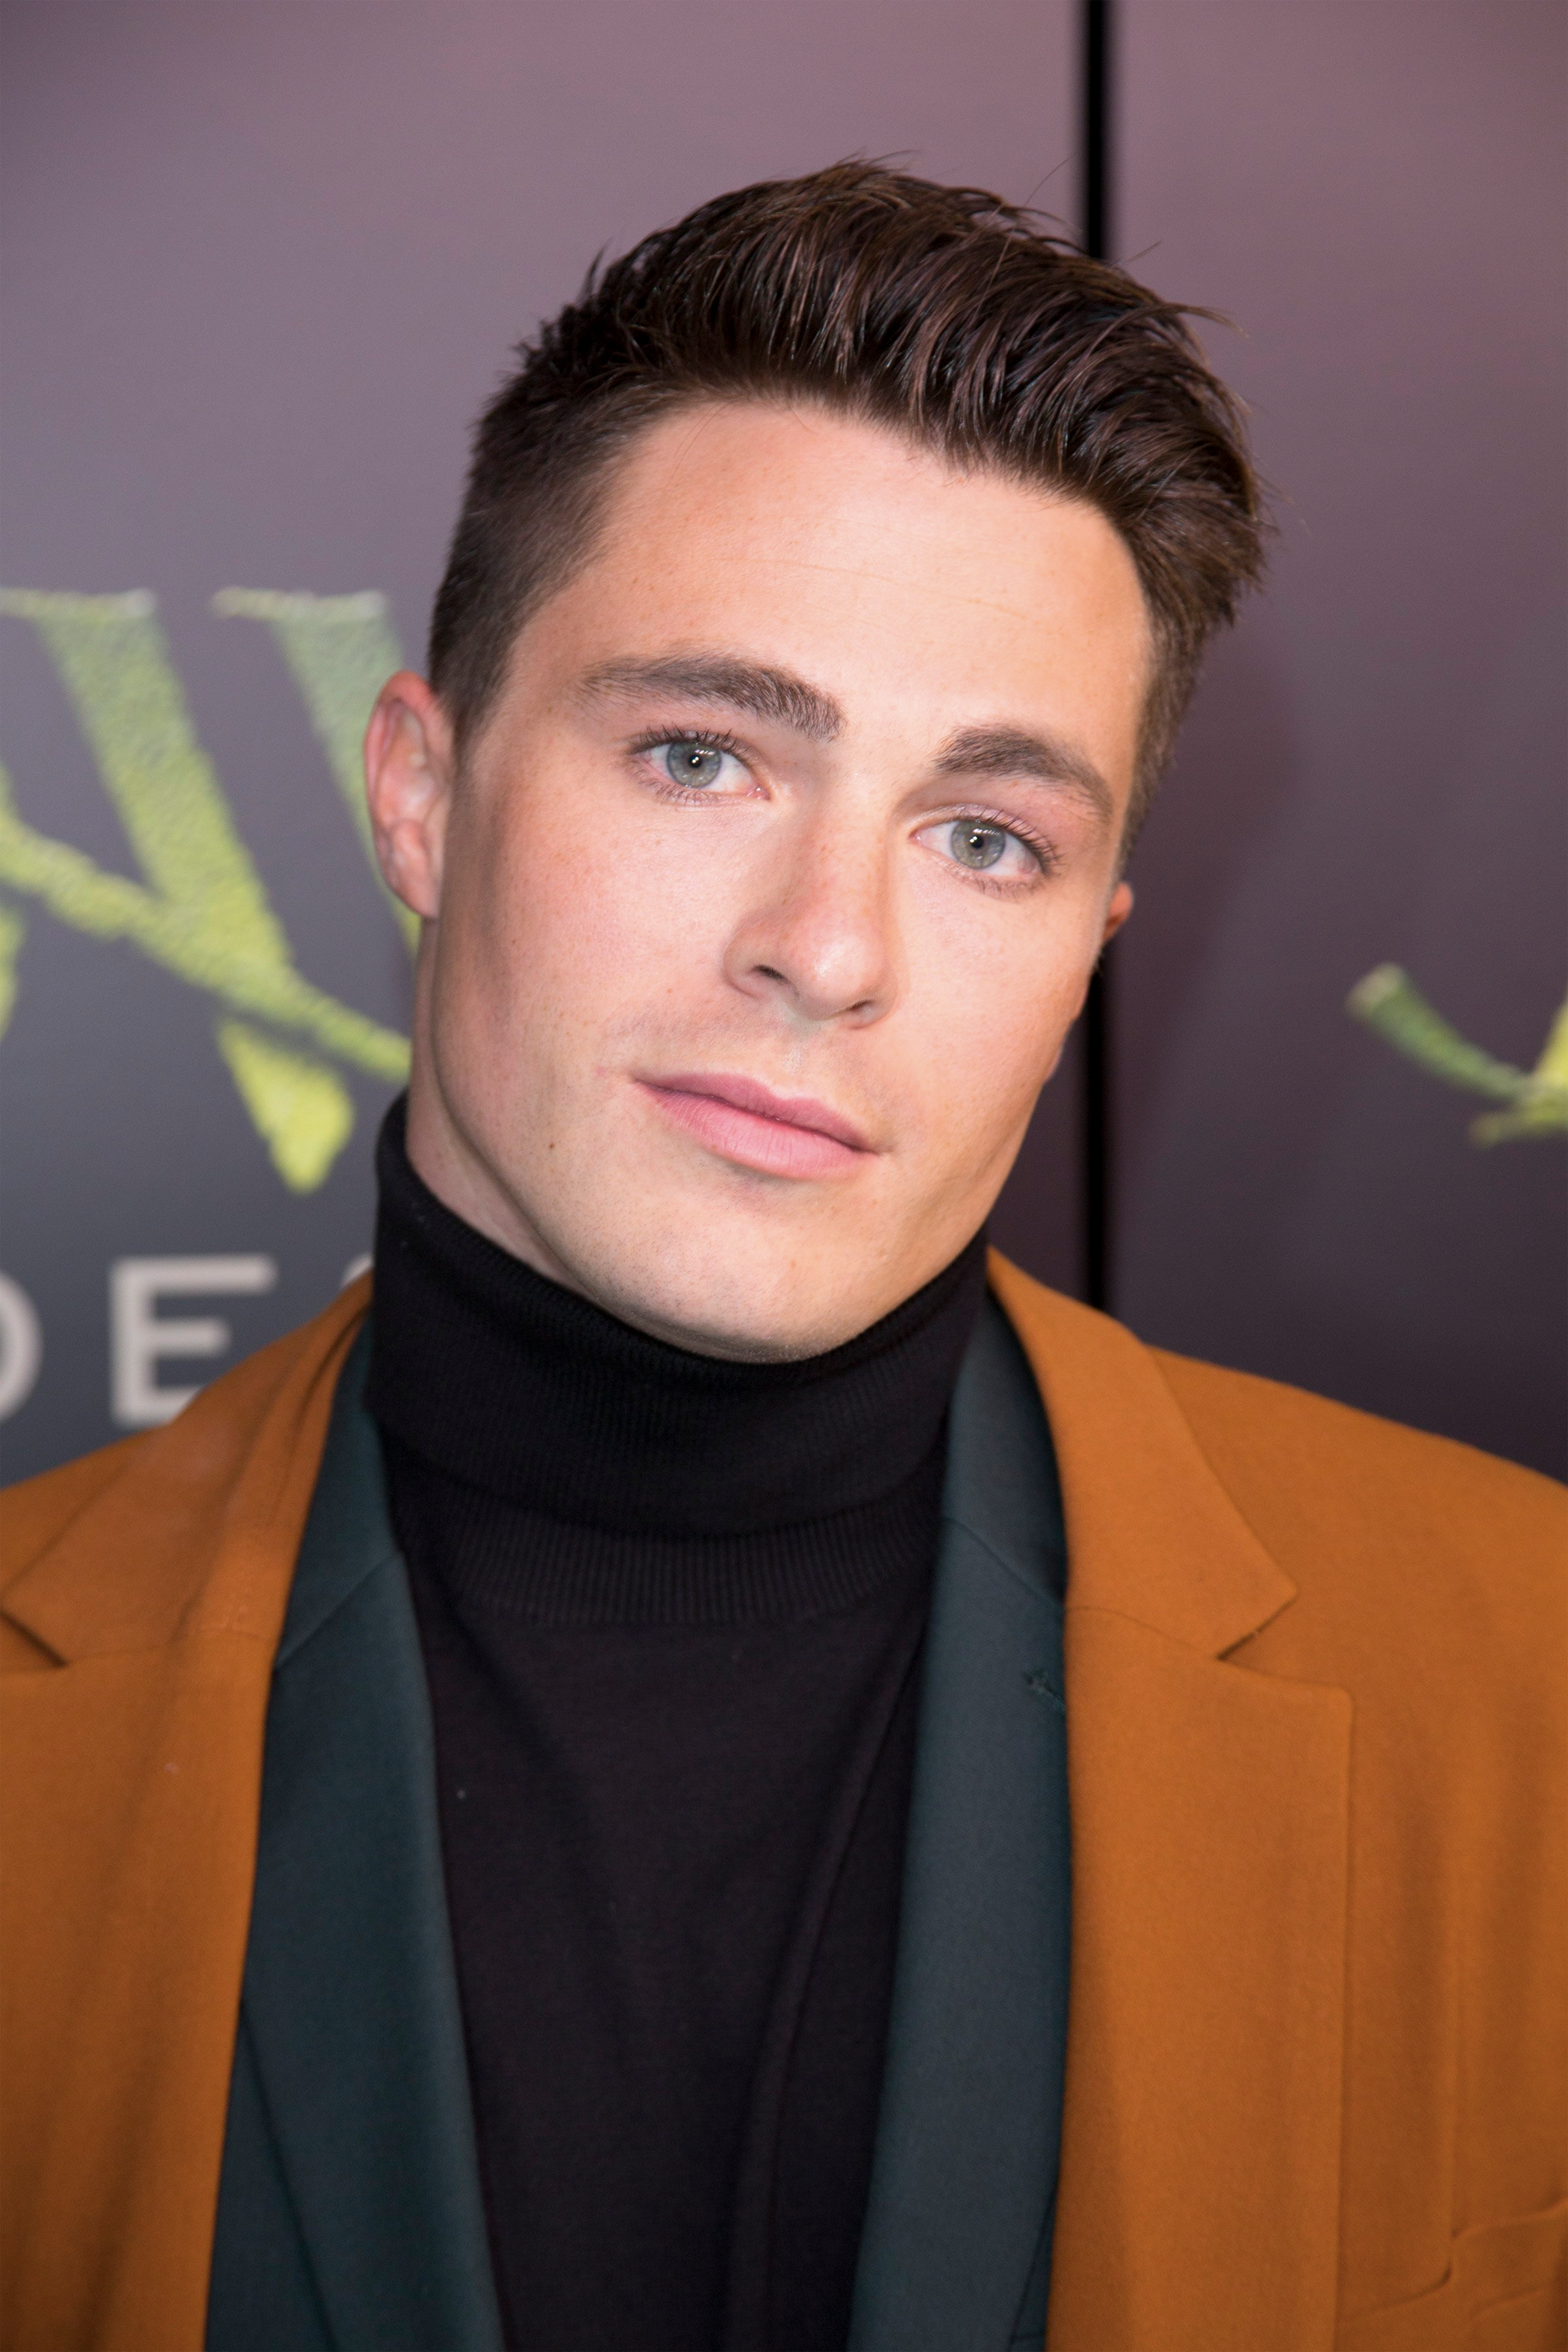 Colton Haynes earned a  million dollar salary, leaving the net worth at 4 million in 2017